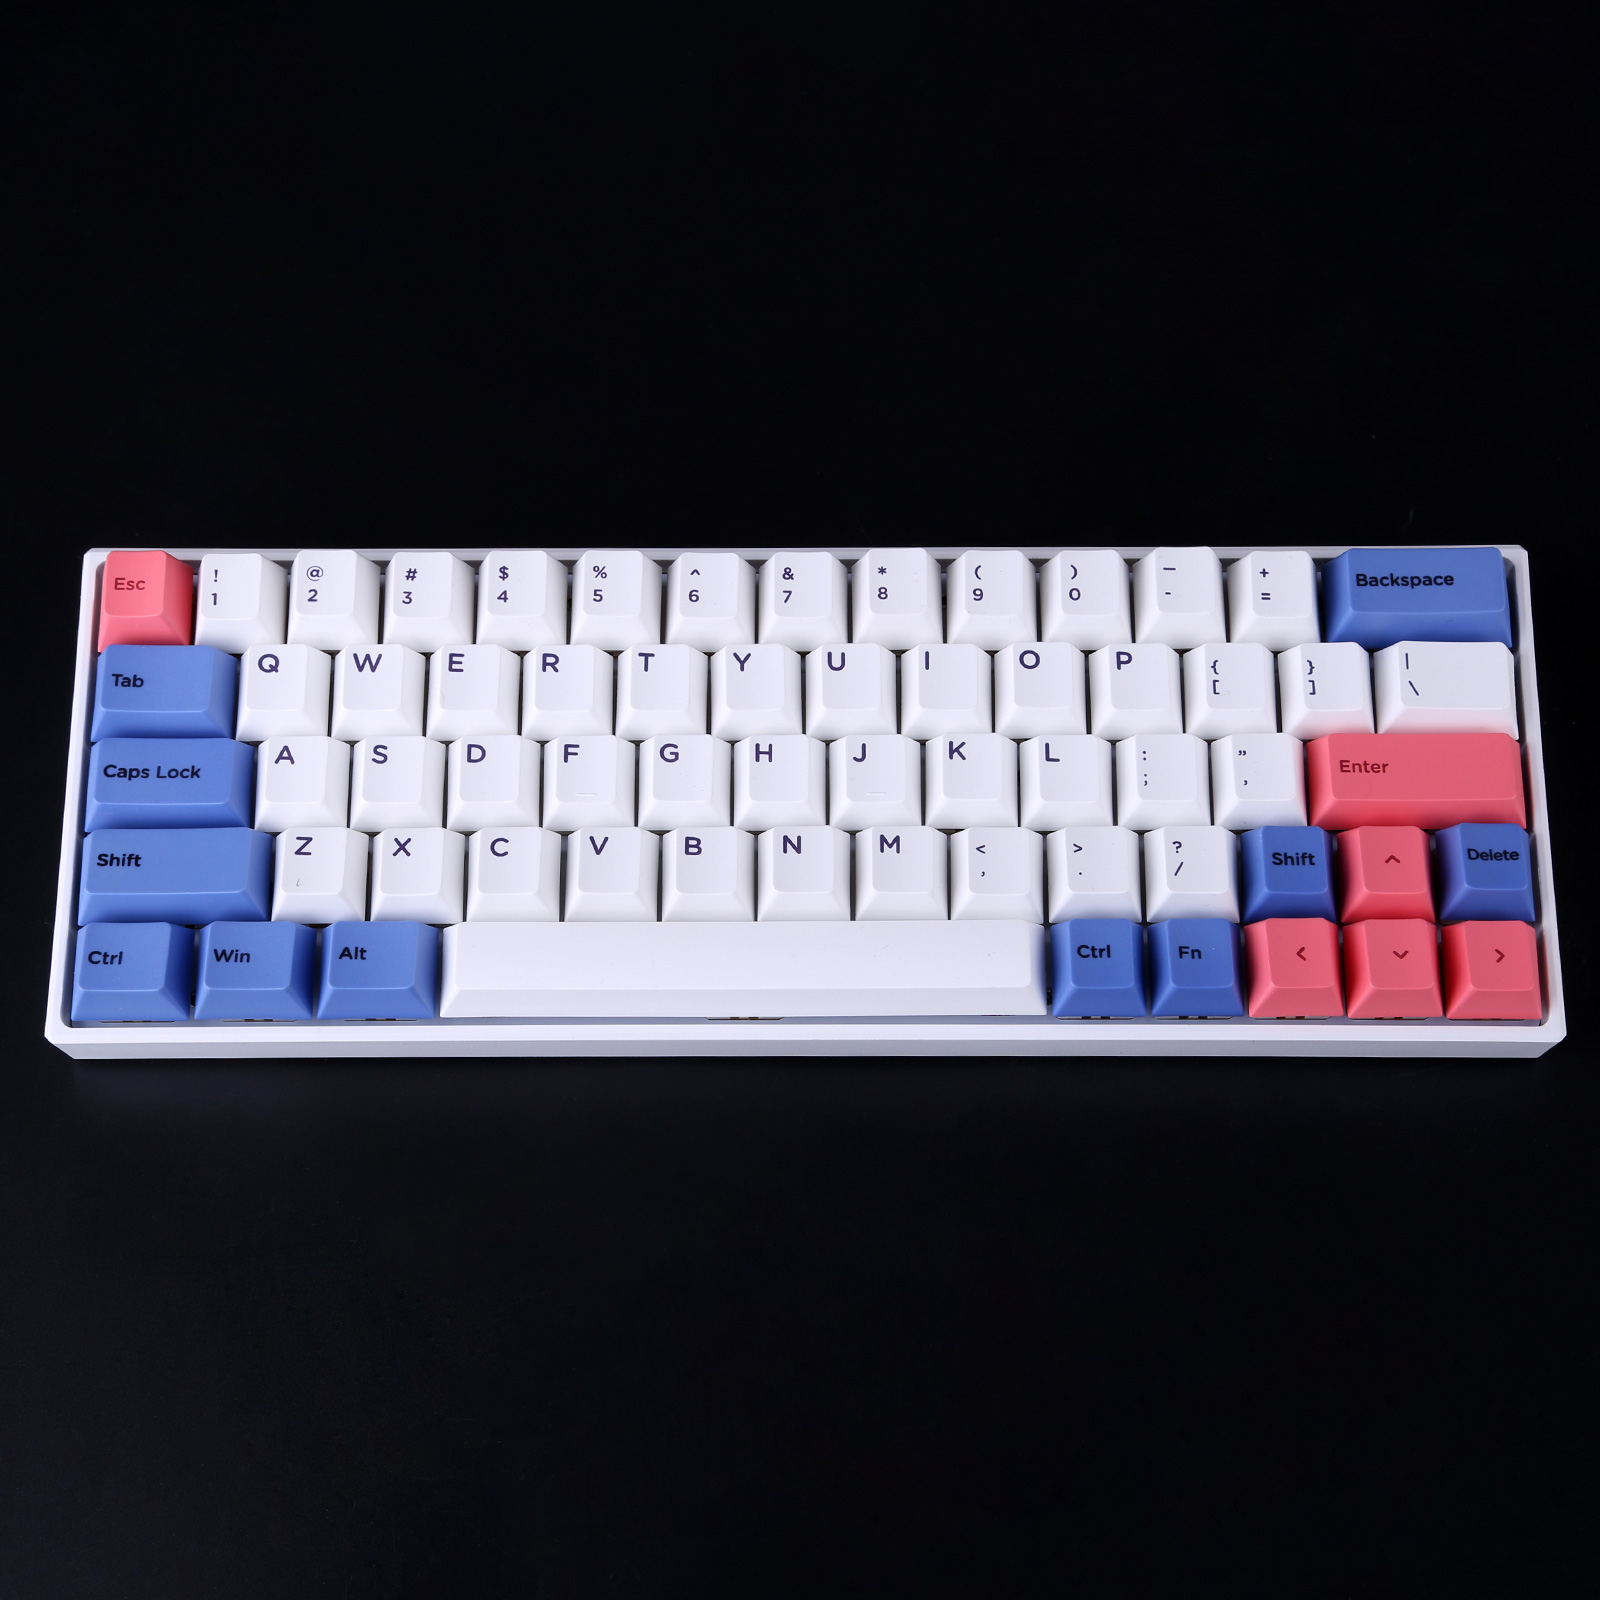 YC64 64-Key Gaming Mechanical Keyboard Hot Swappable PBT Keycaps RGB Bluetooth Wireless Wired Dual-mode